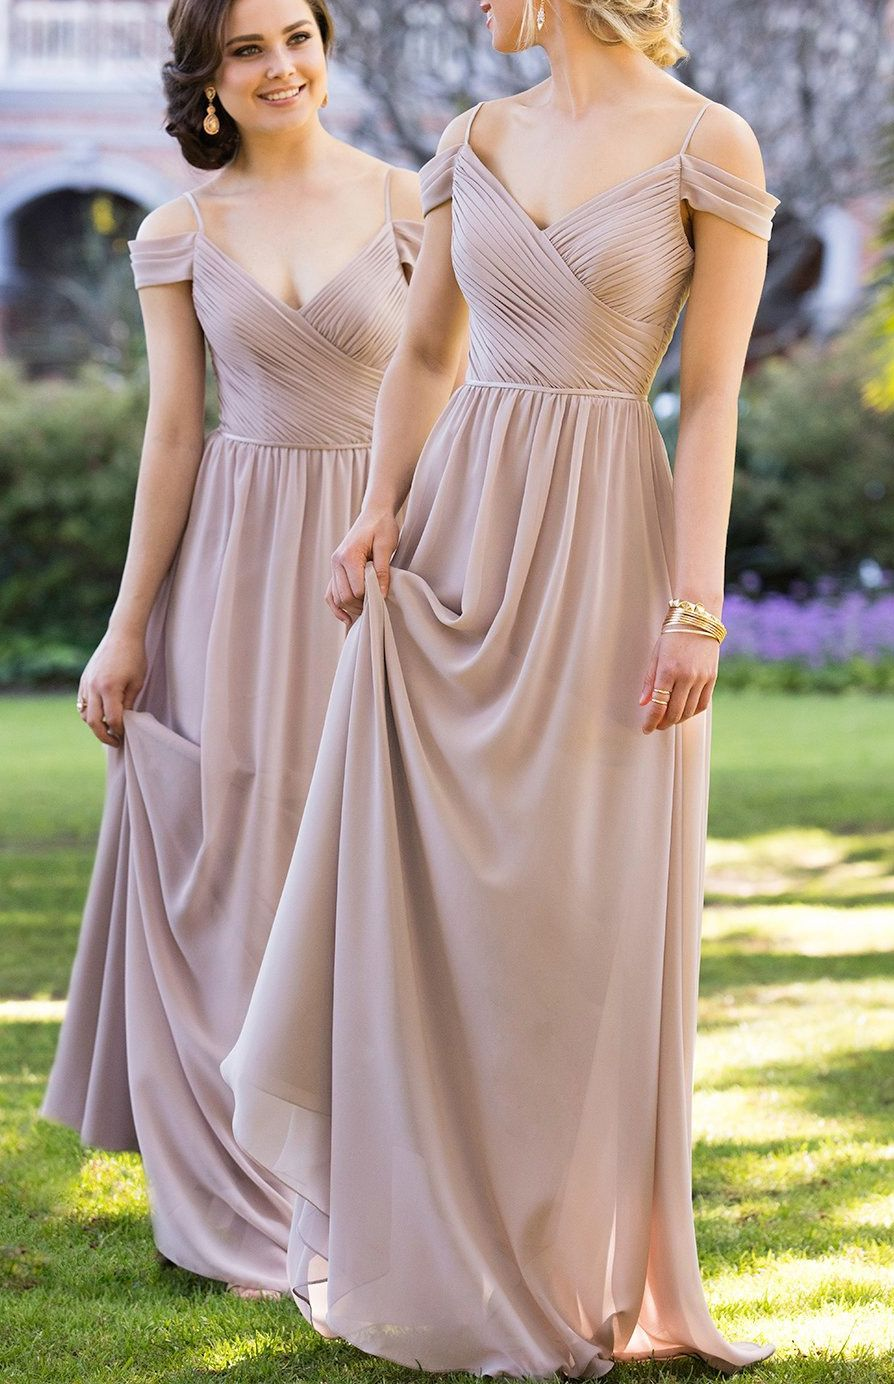 Customized sleeveless grey bridesmaid dresses excellent long a customized sleeveless grey bridesmaid dresses excellent long a lineprincess ruffles zipper dresses wf02g59 ombrellifo Choice Image